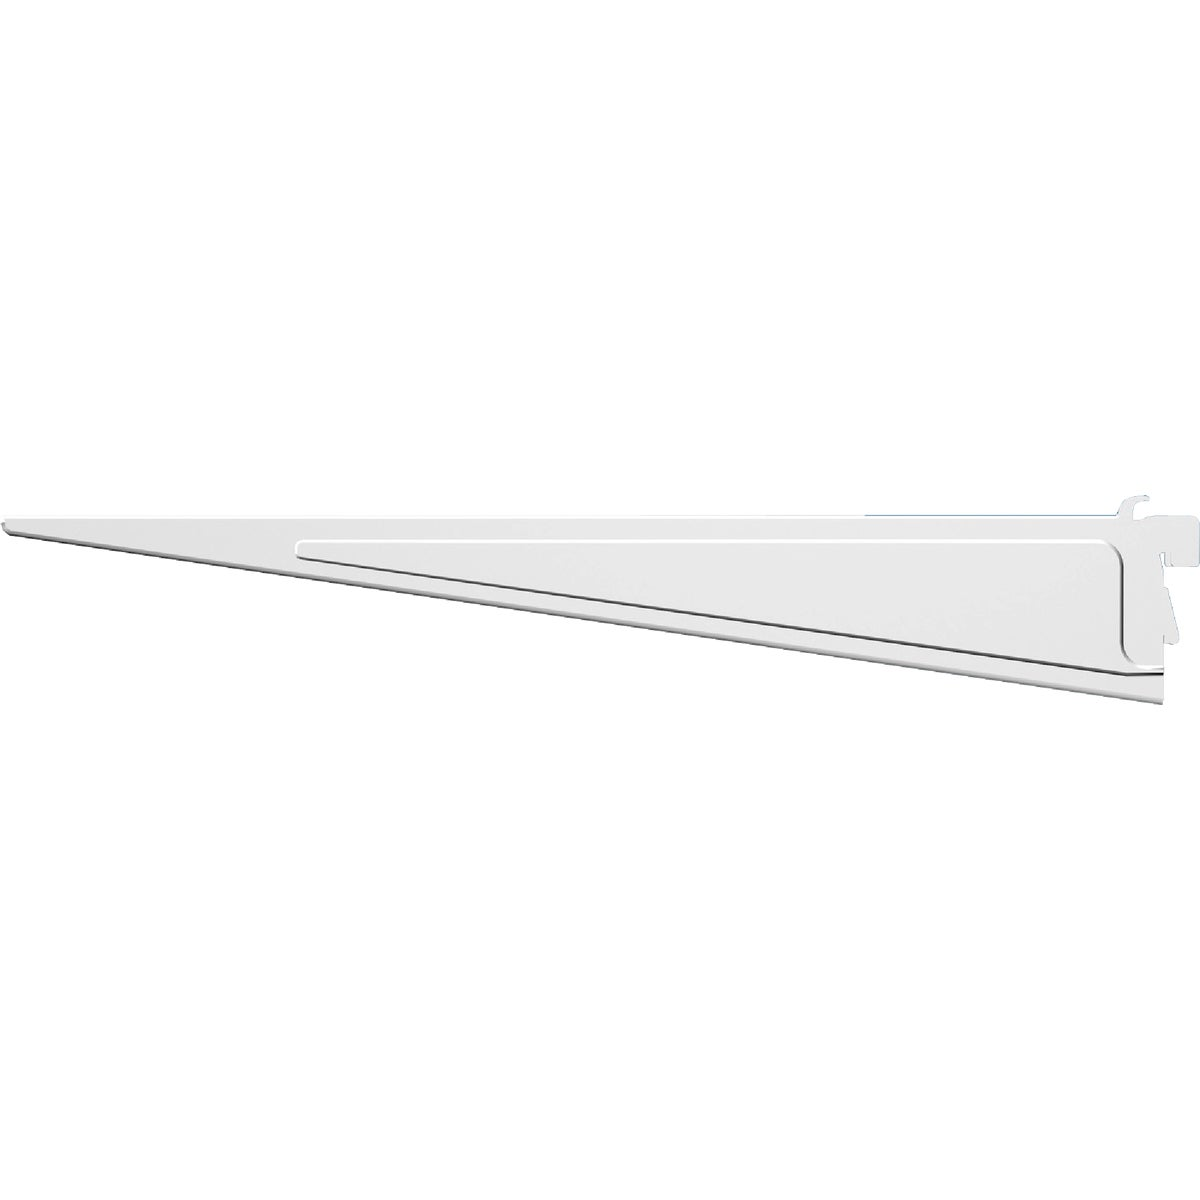 "16"" CLOSET SHELF BRACKET - 285400 by Closetmaid"